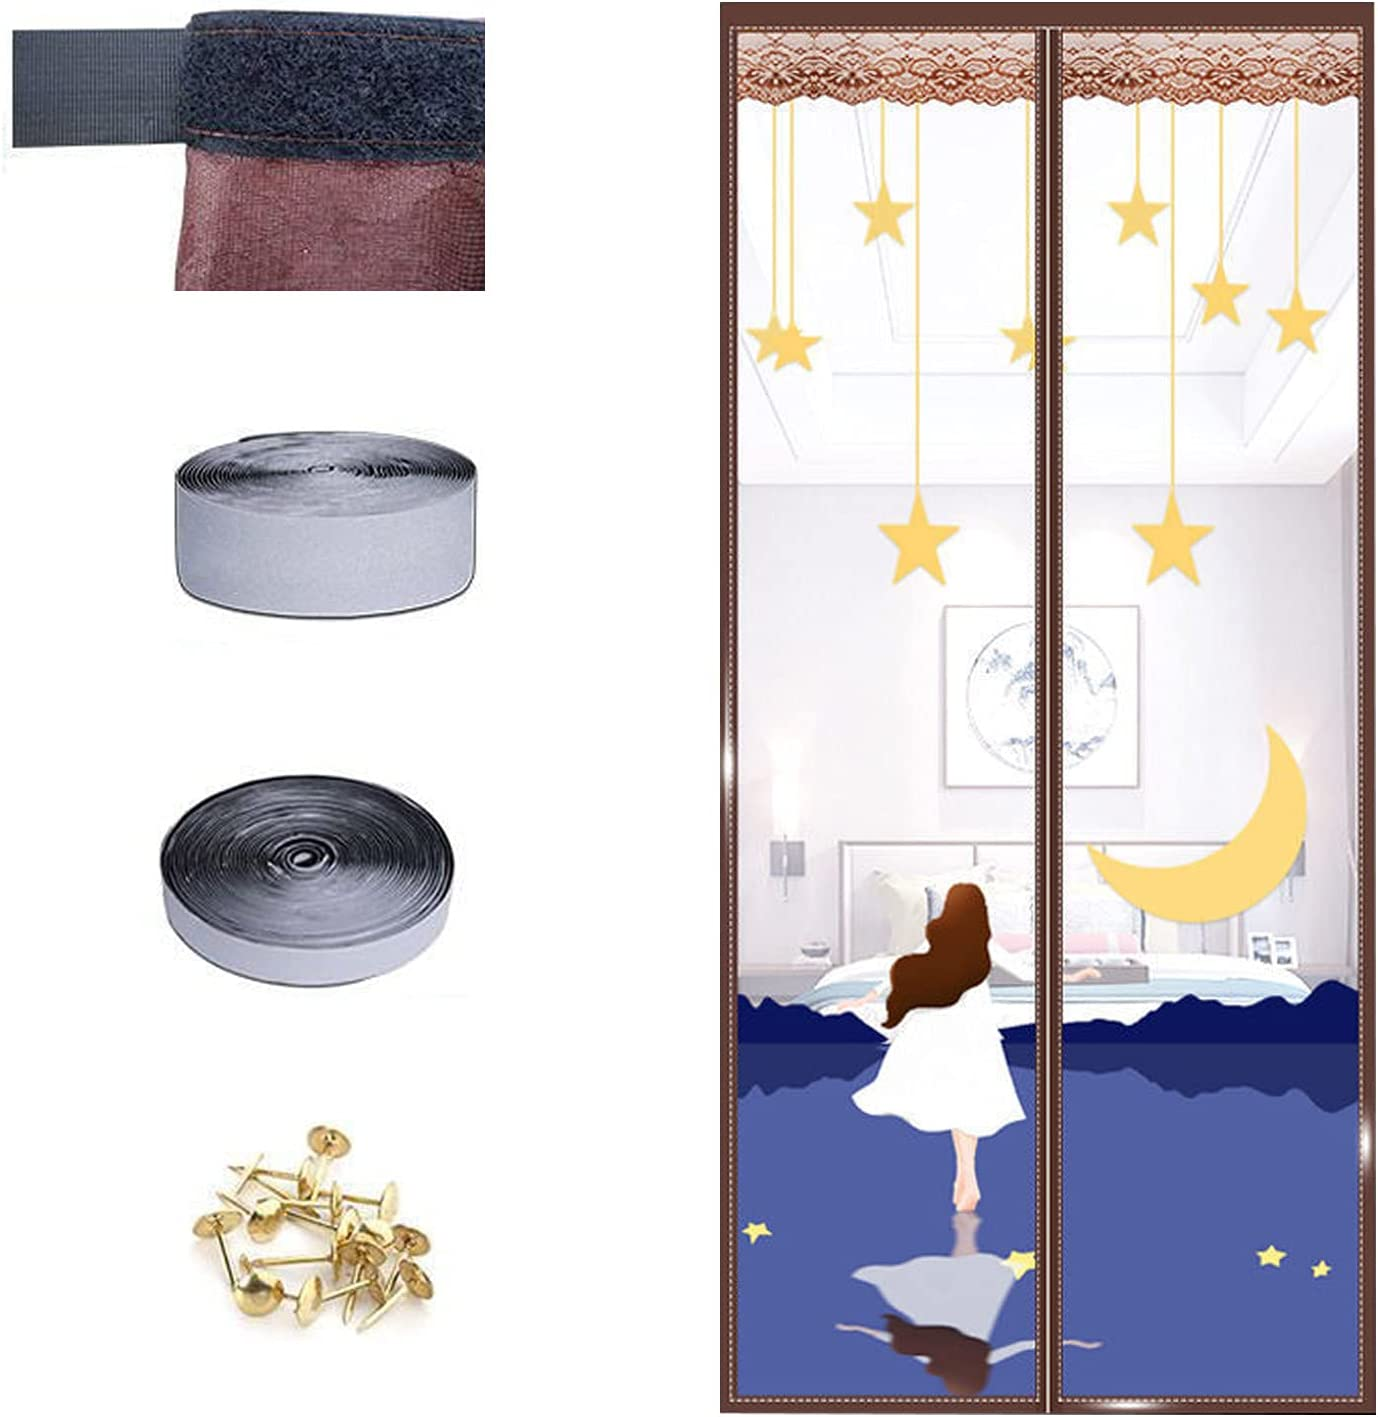 Upgraded Version Now on sale Magnetic Screen Door Frame HookLoo Full - Max 43% OFF with